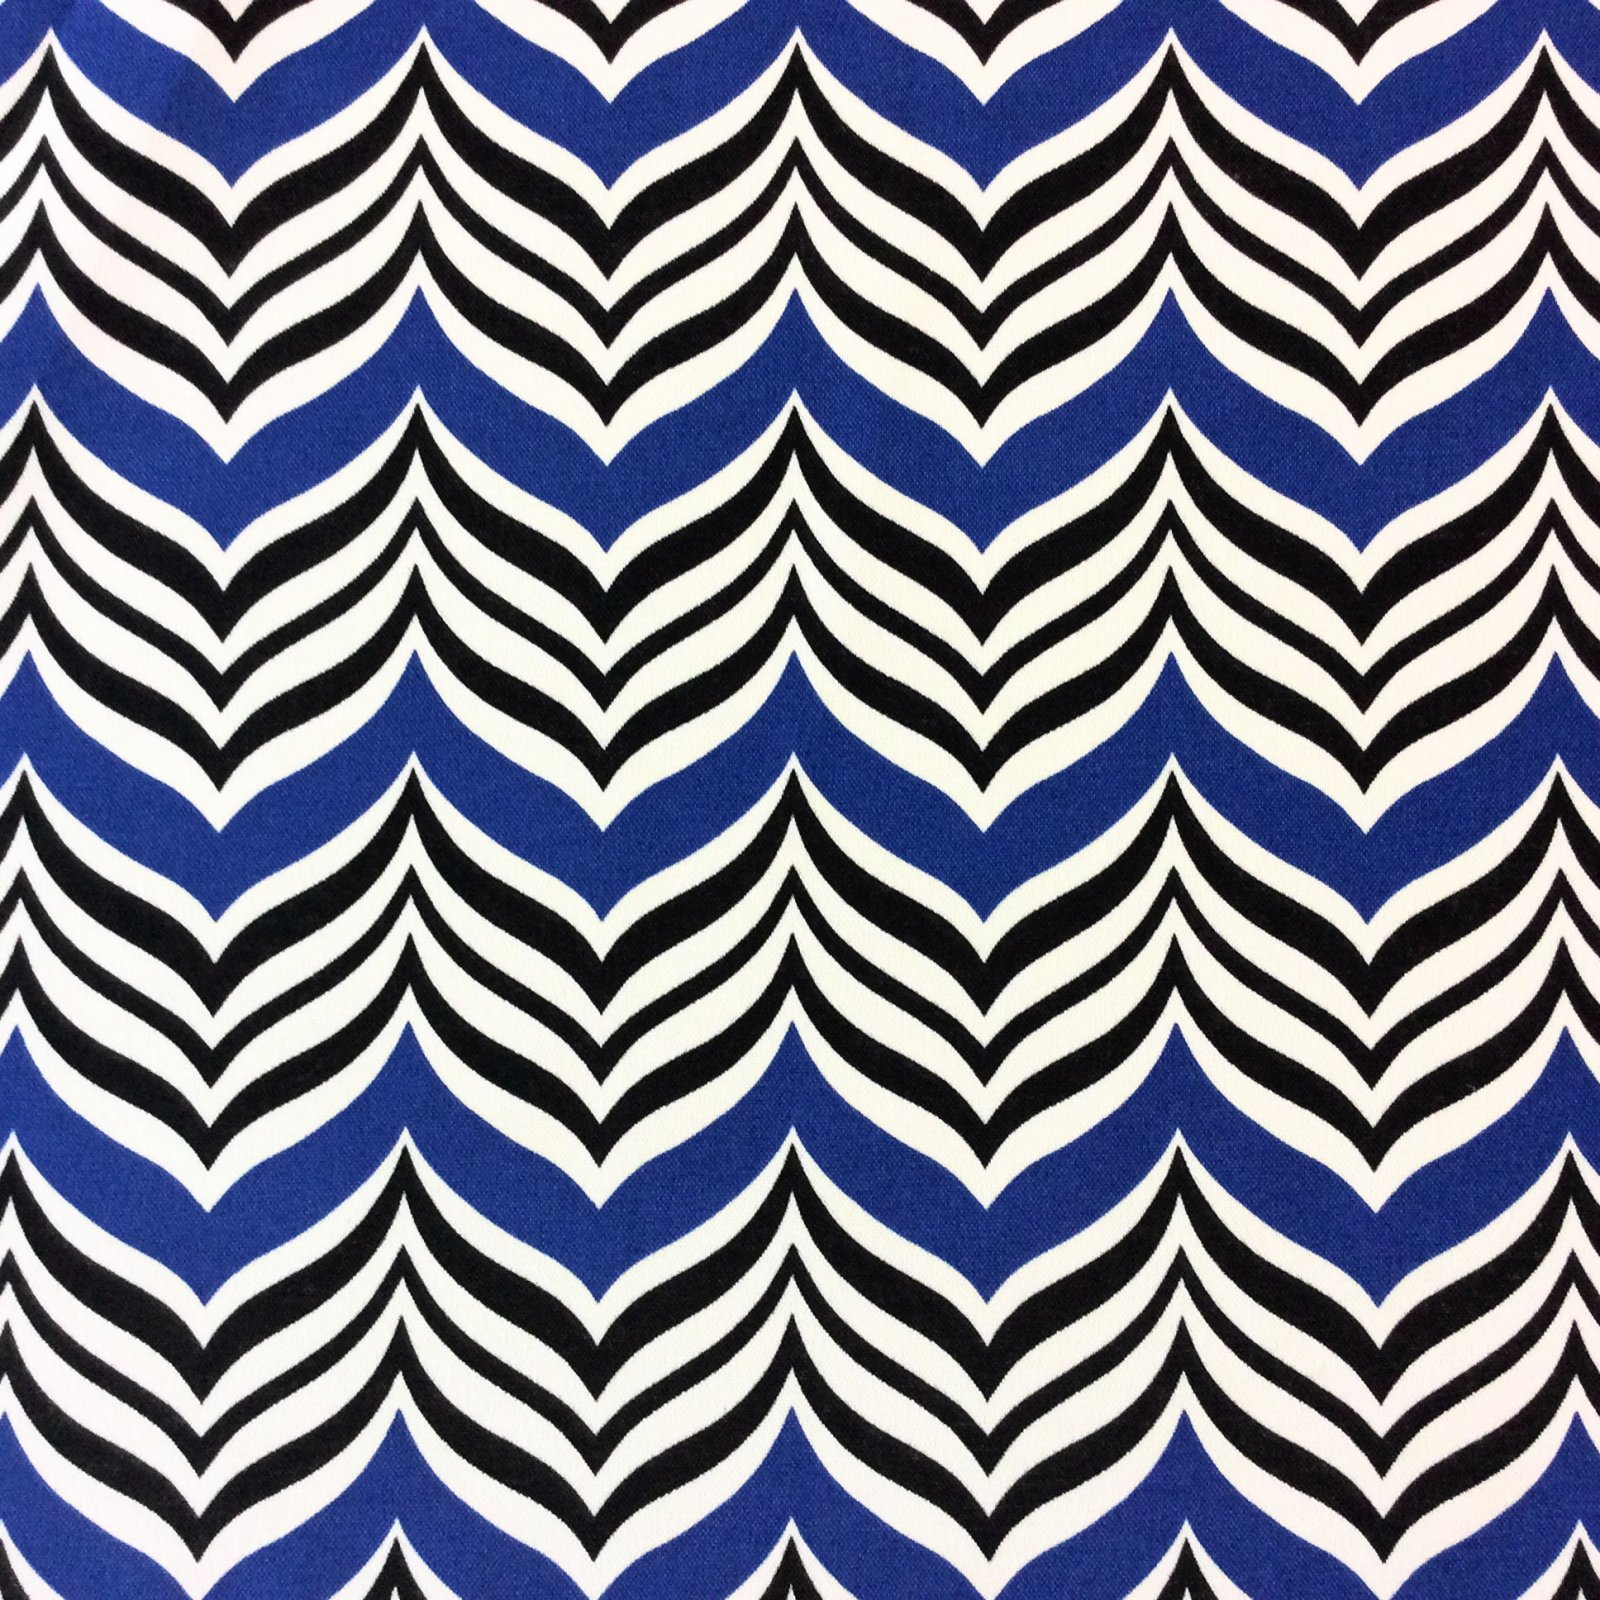 wave printed ripple blue black whitethe yard outdoor home